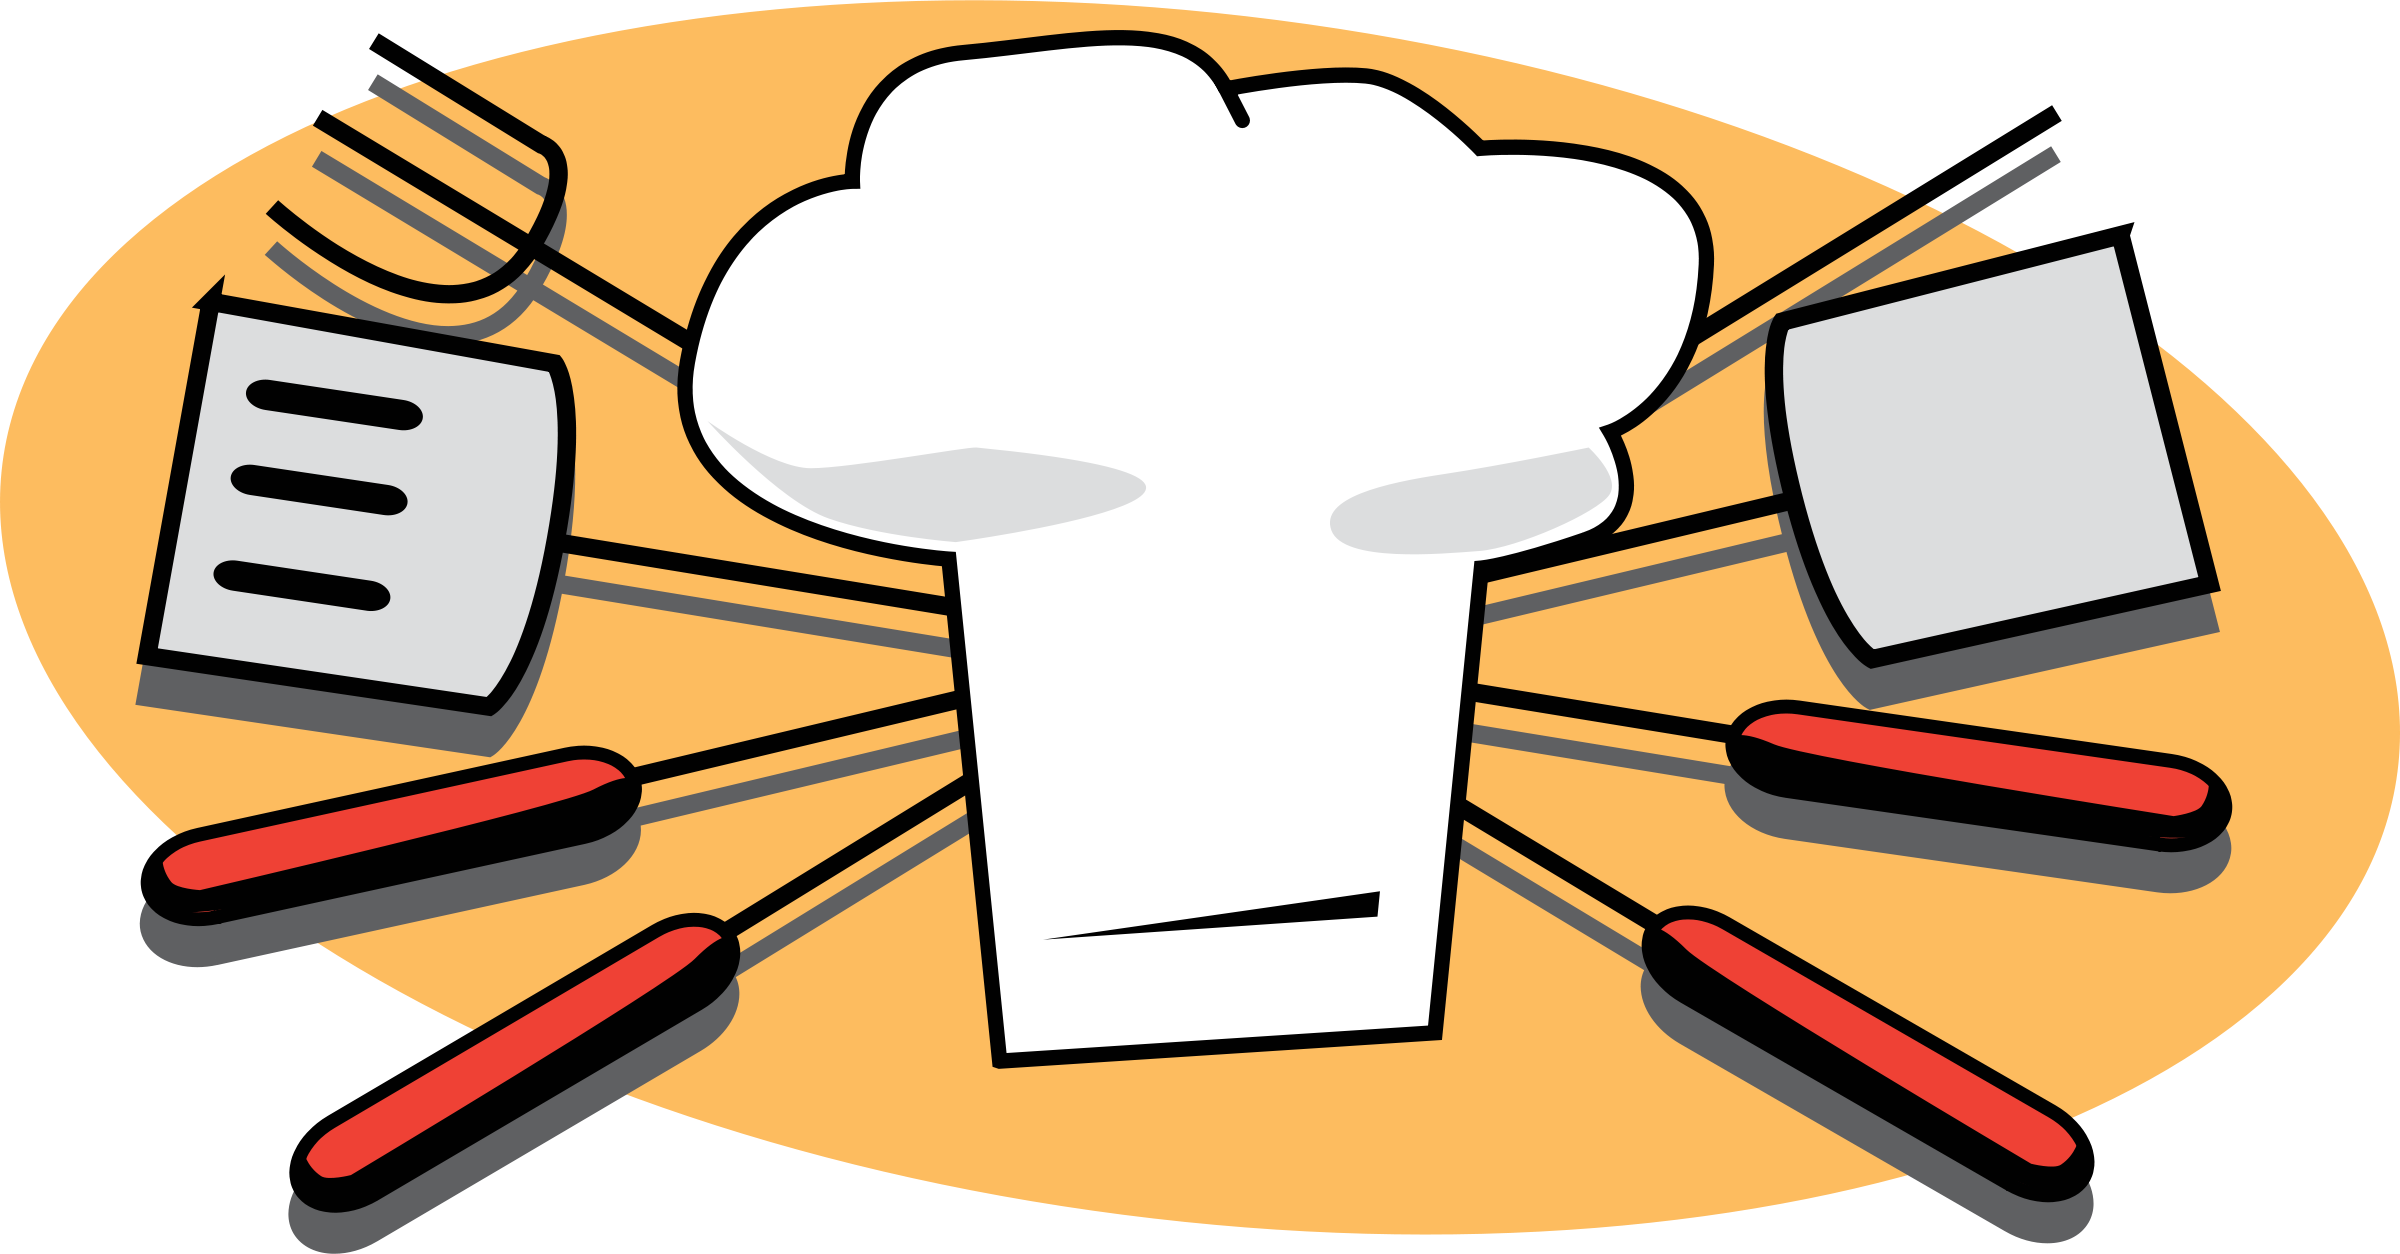 Clipart Of Grill, Teacher And Pit.